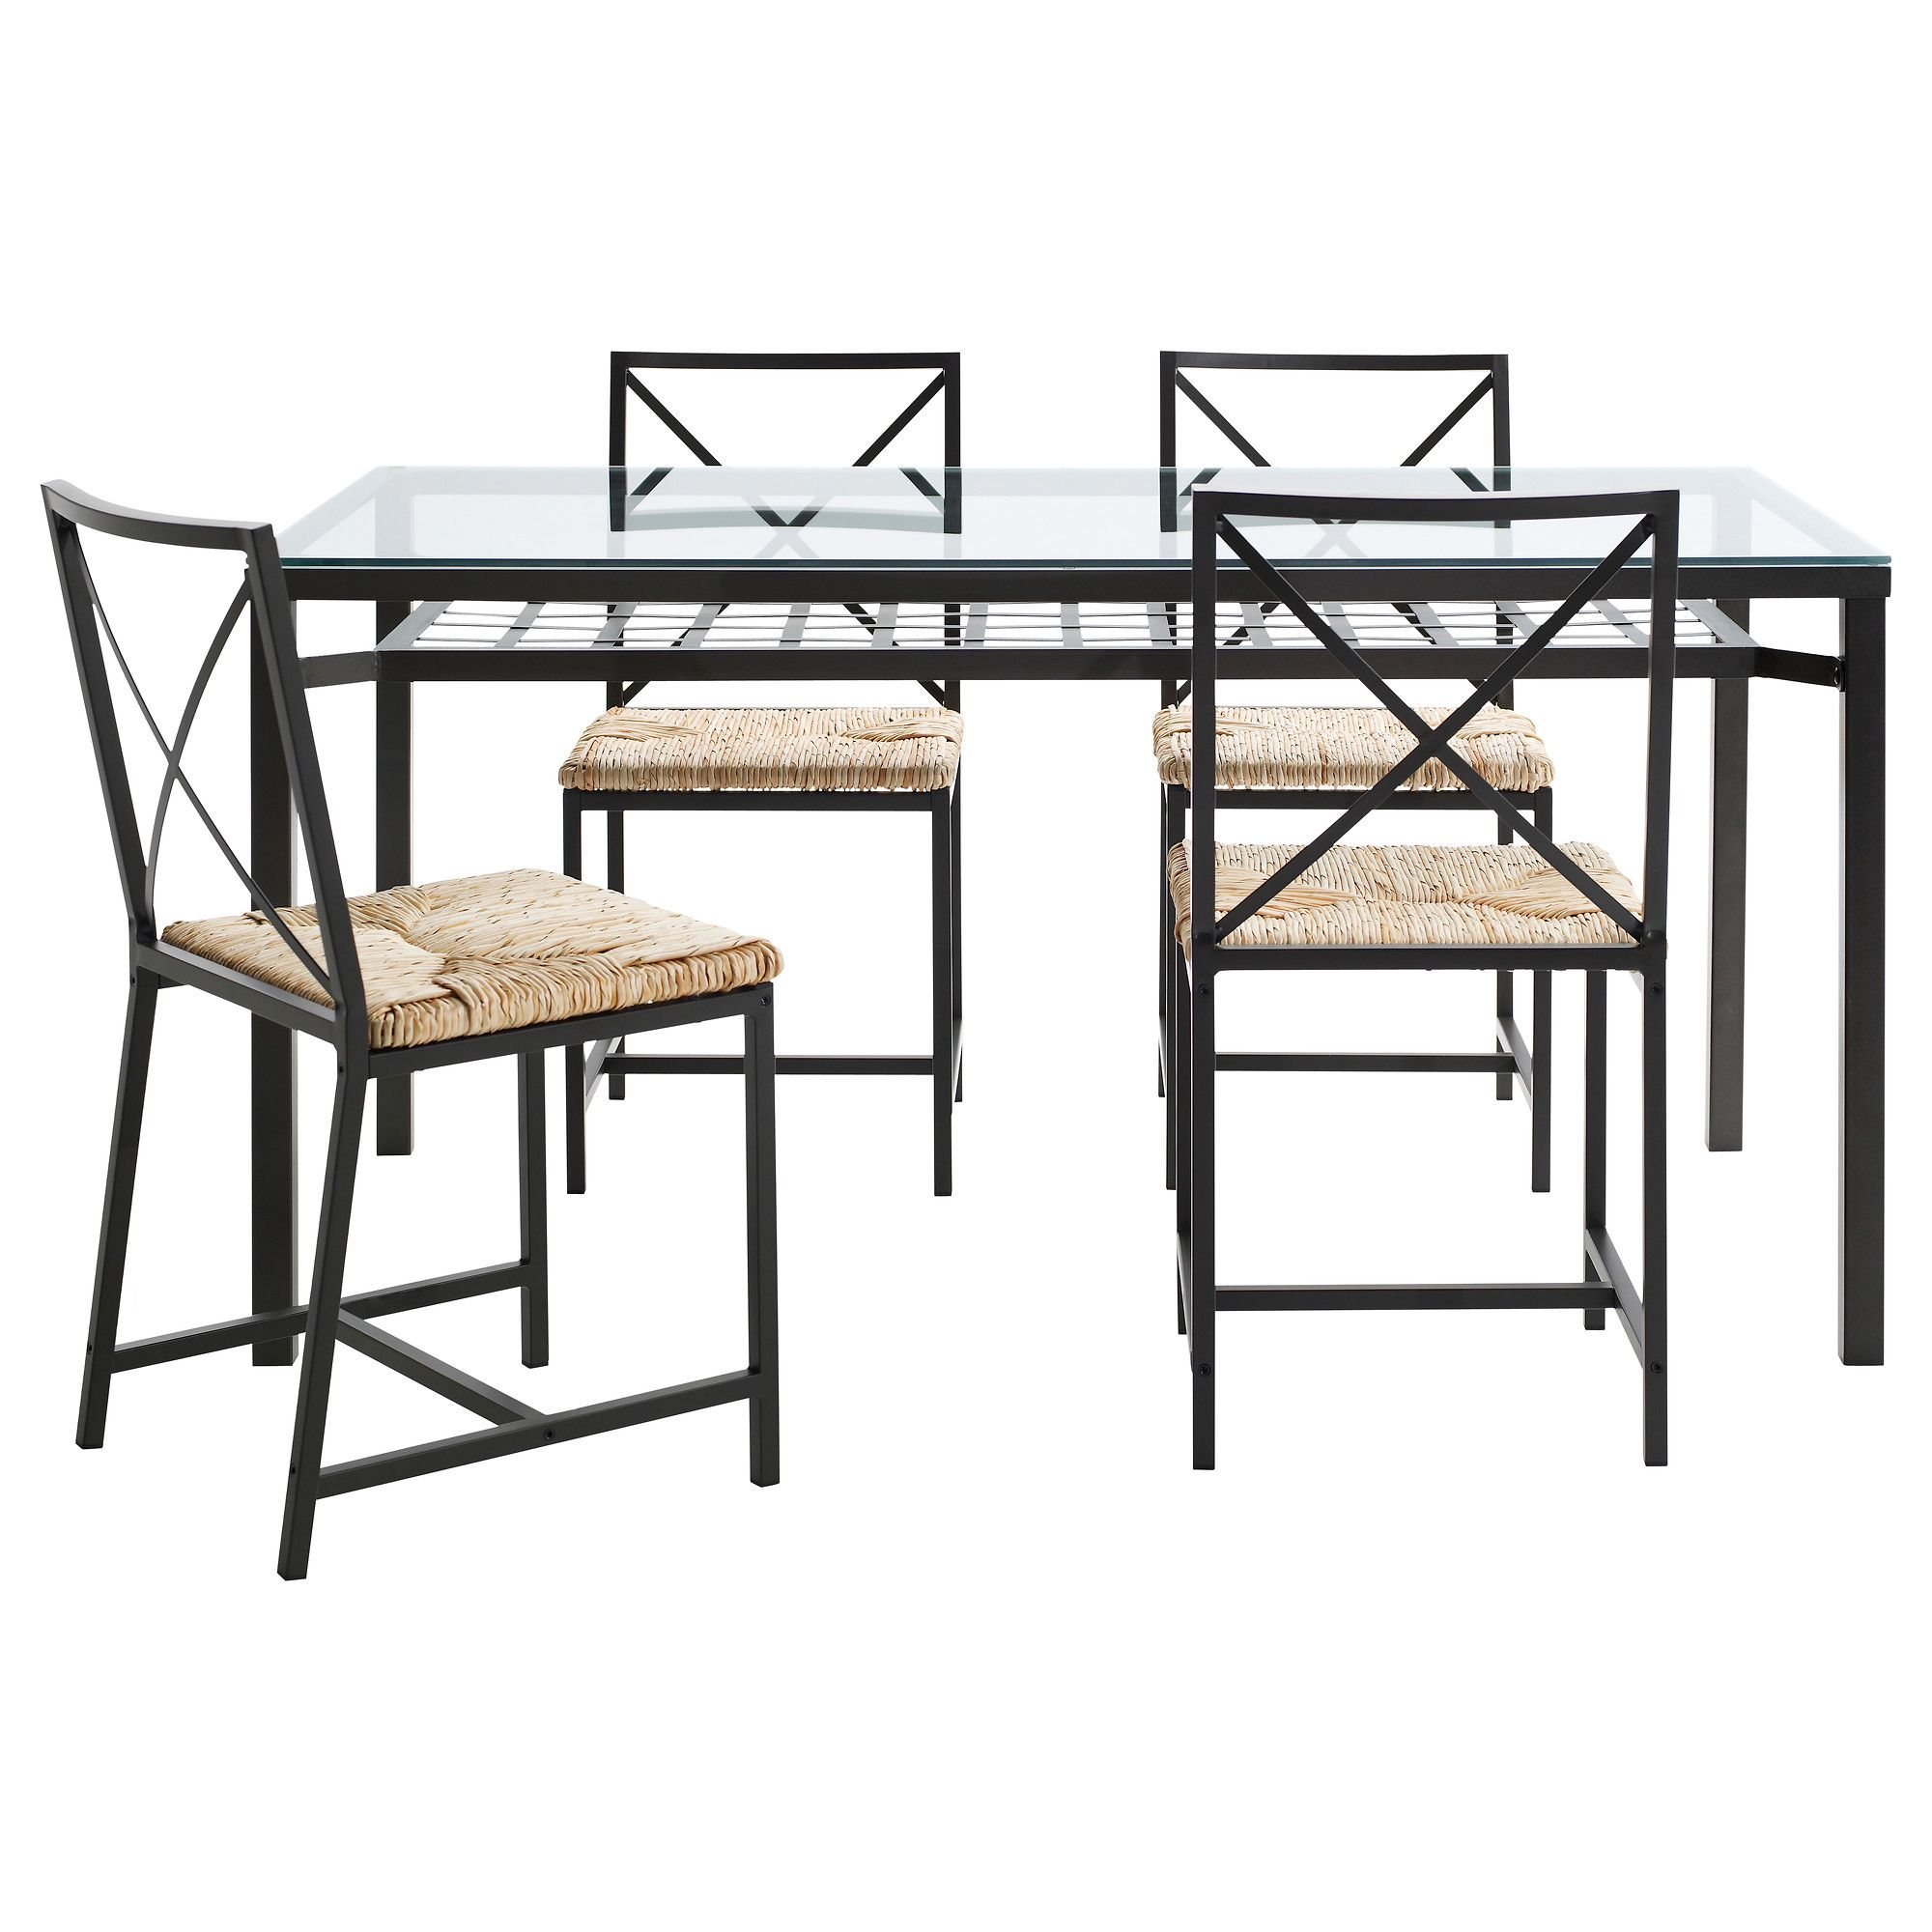 Meubles Et Articles D Ameublement Inspirez Vous Ikea Glass Dining Table Ikea Dining Table Set Dining Table Chairs